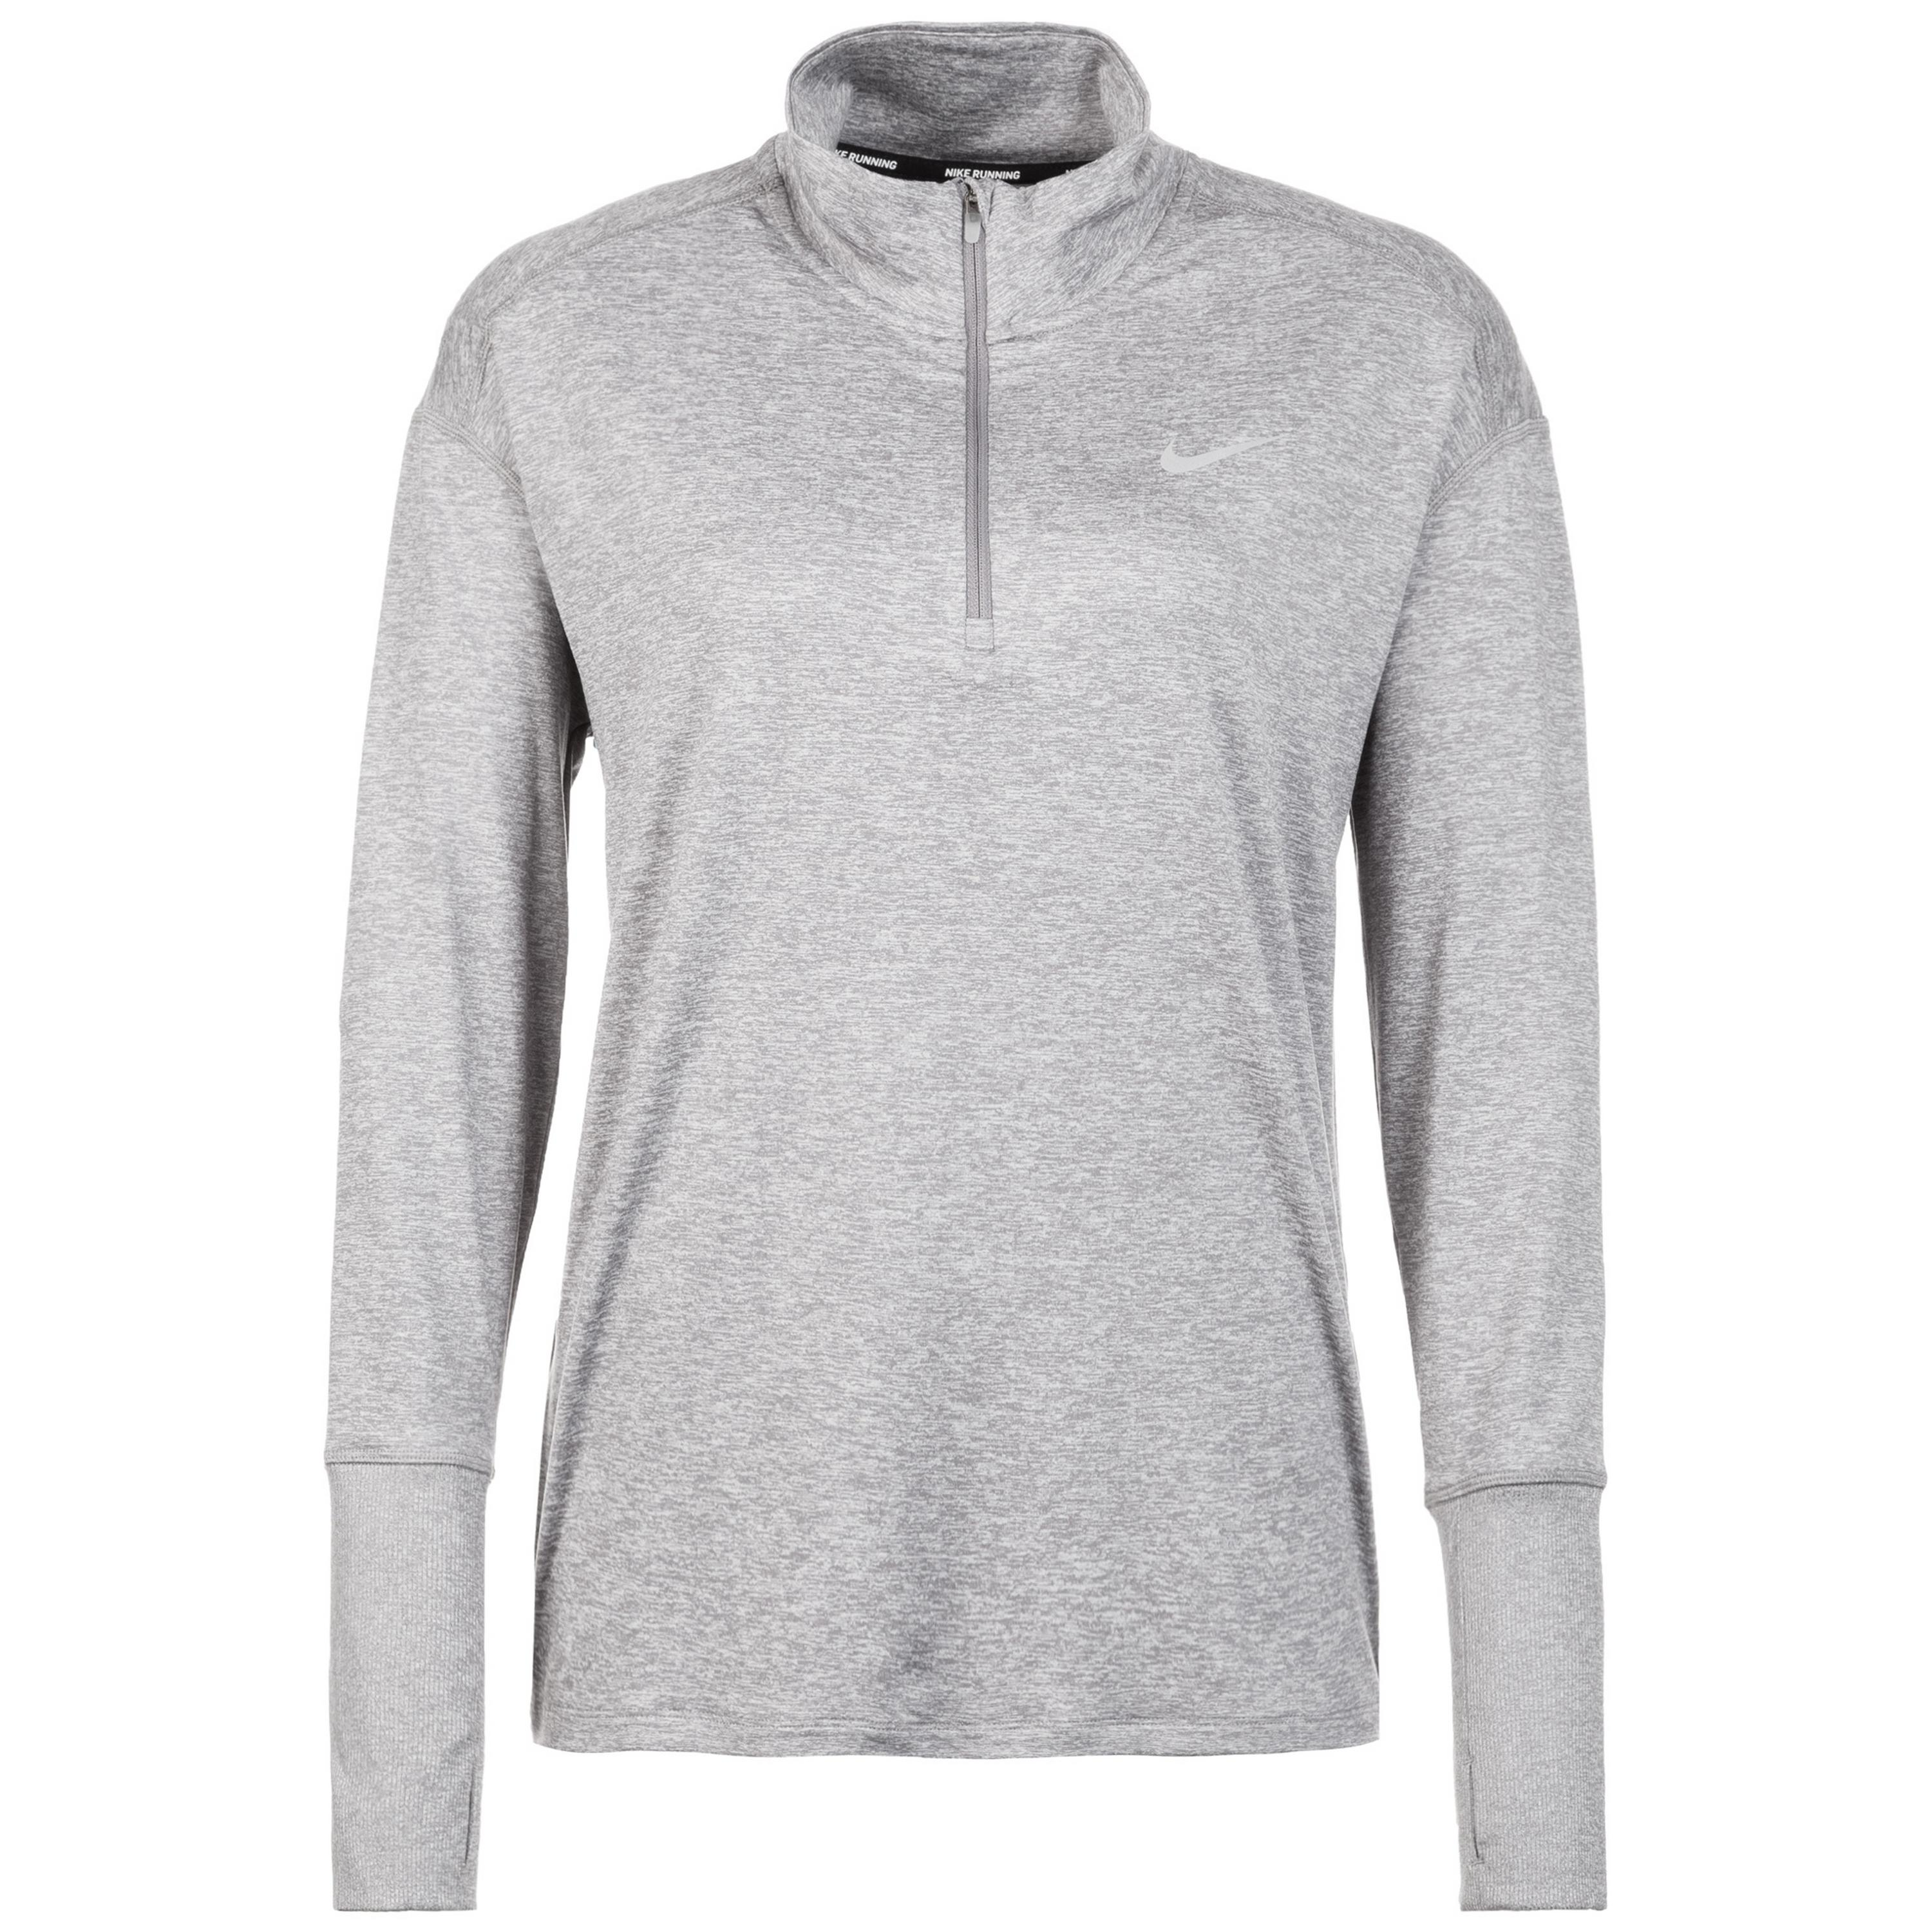 Nike Element Laufshirt Damen